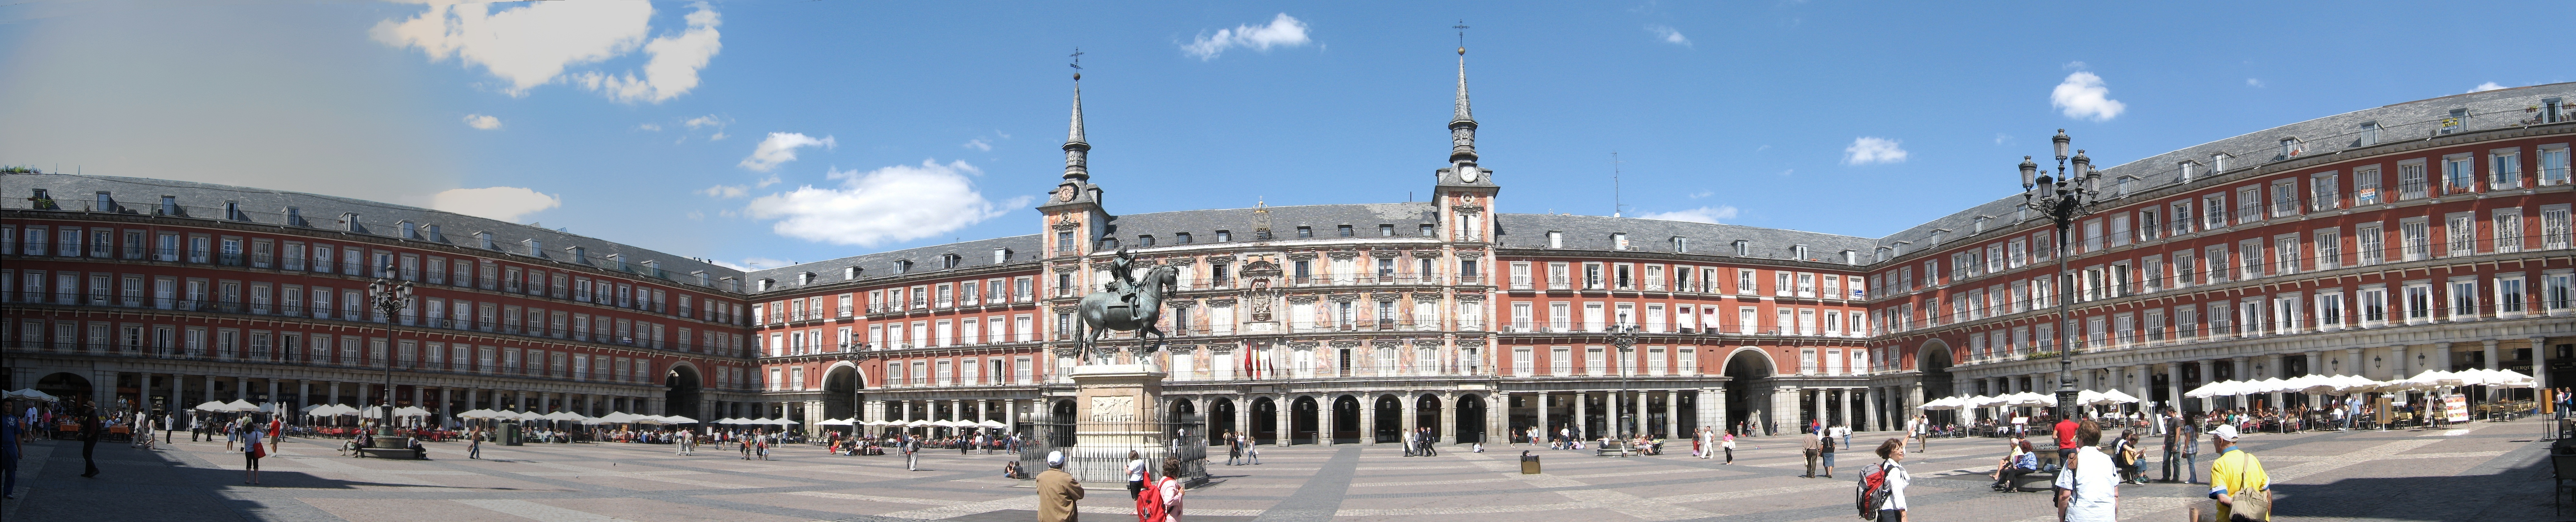 File:Plaza Mayor 3 lados pano cilindrica.jpg